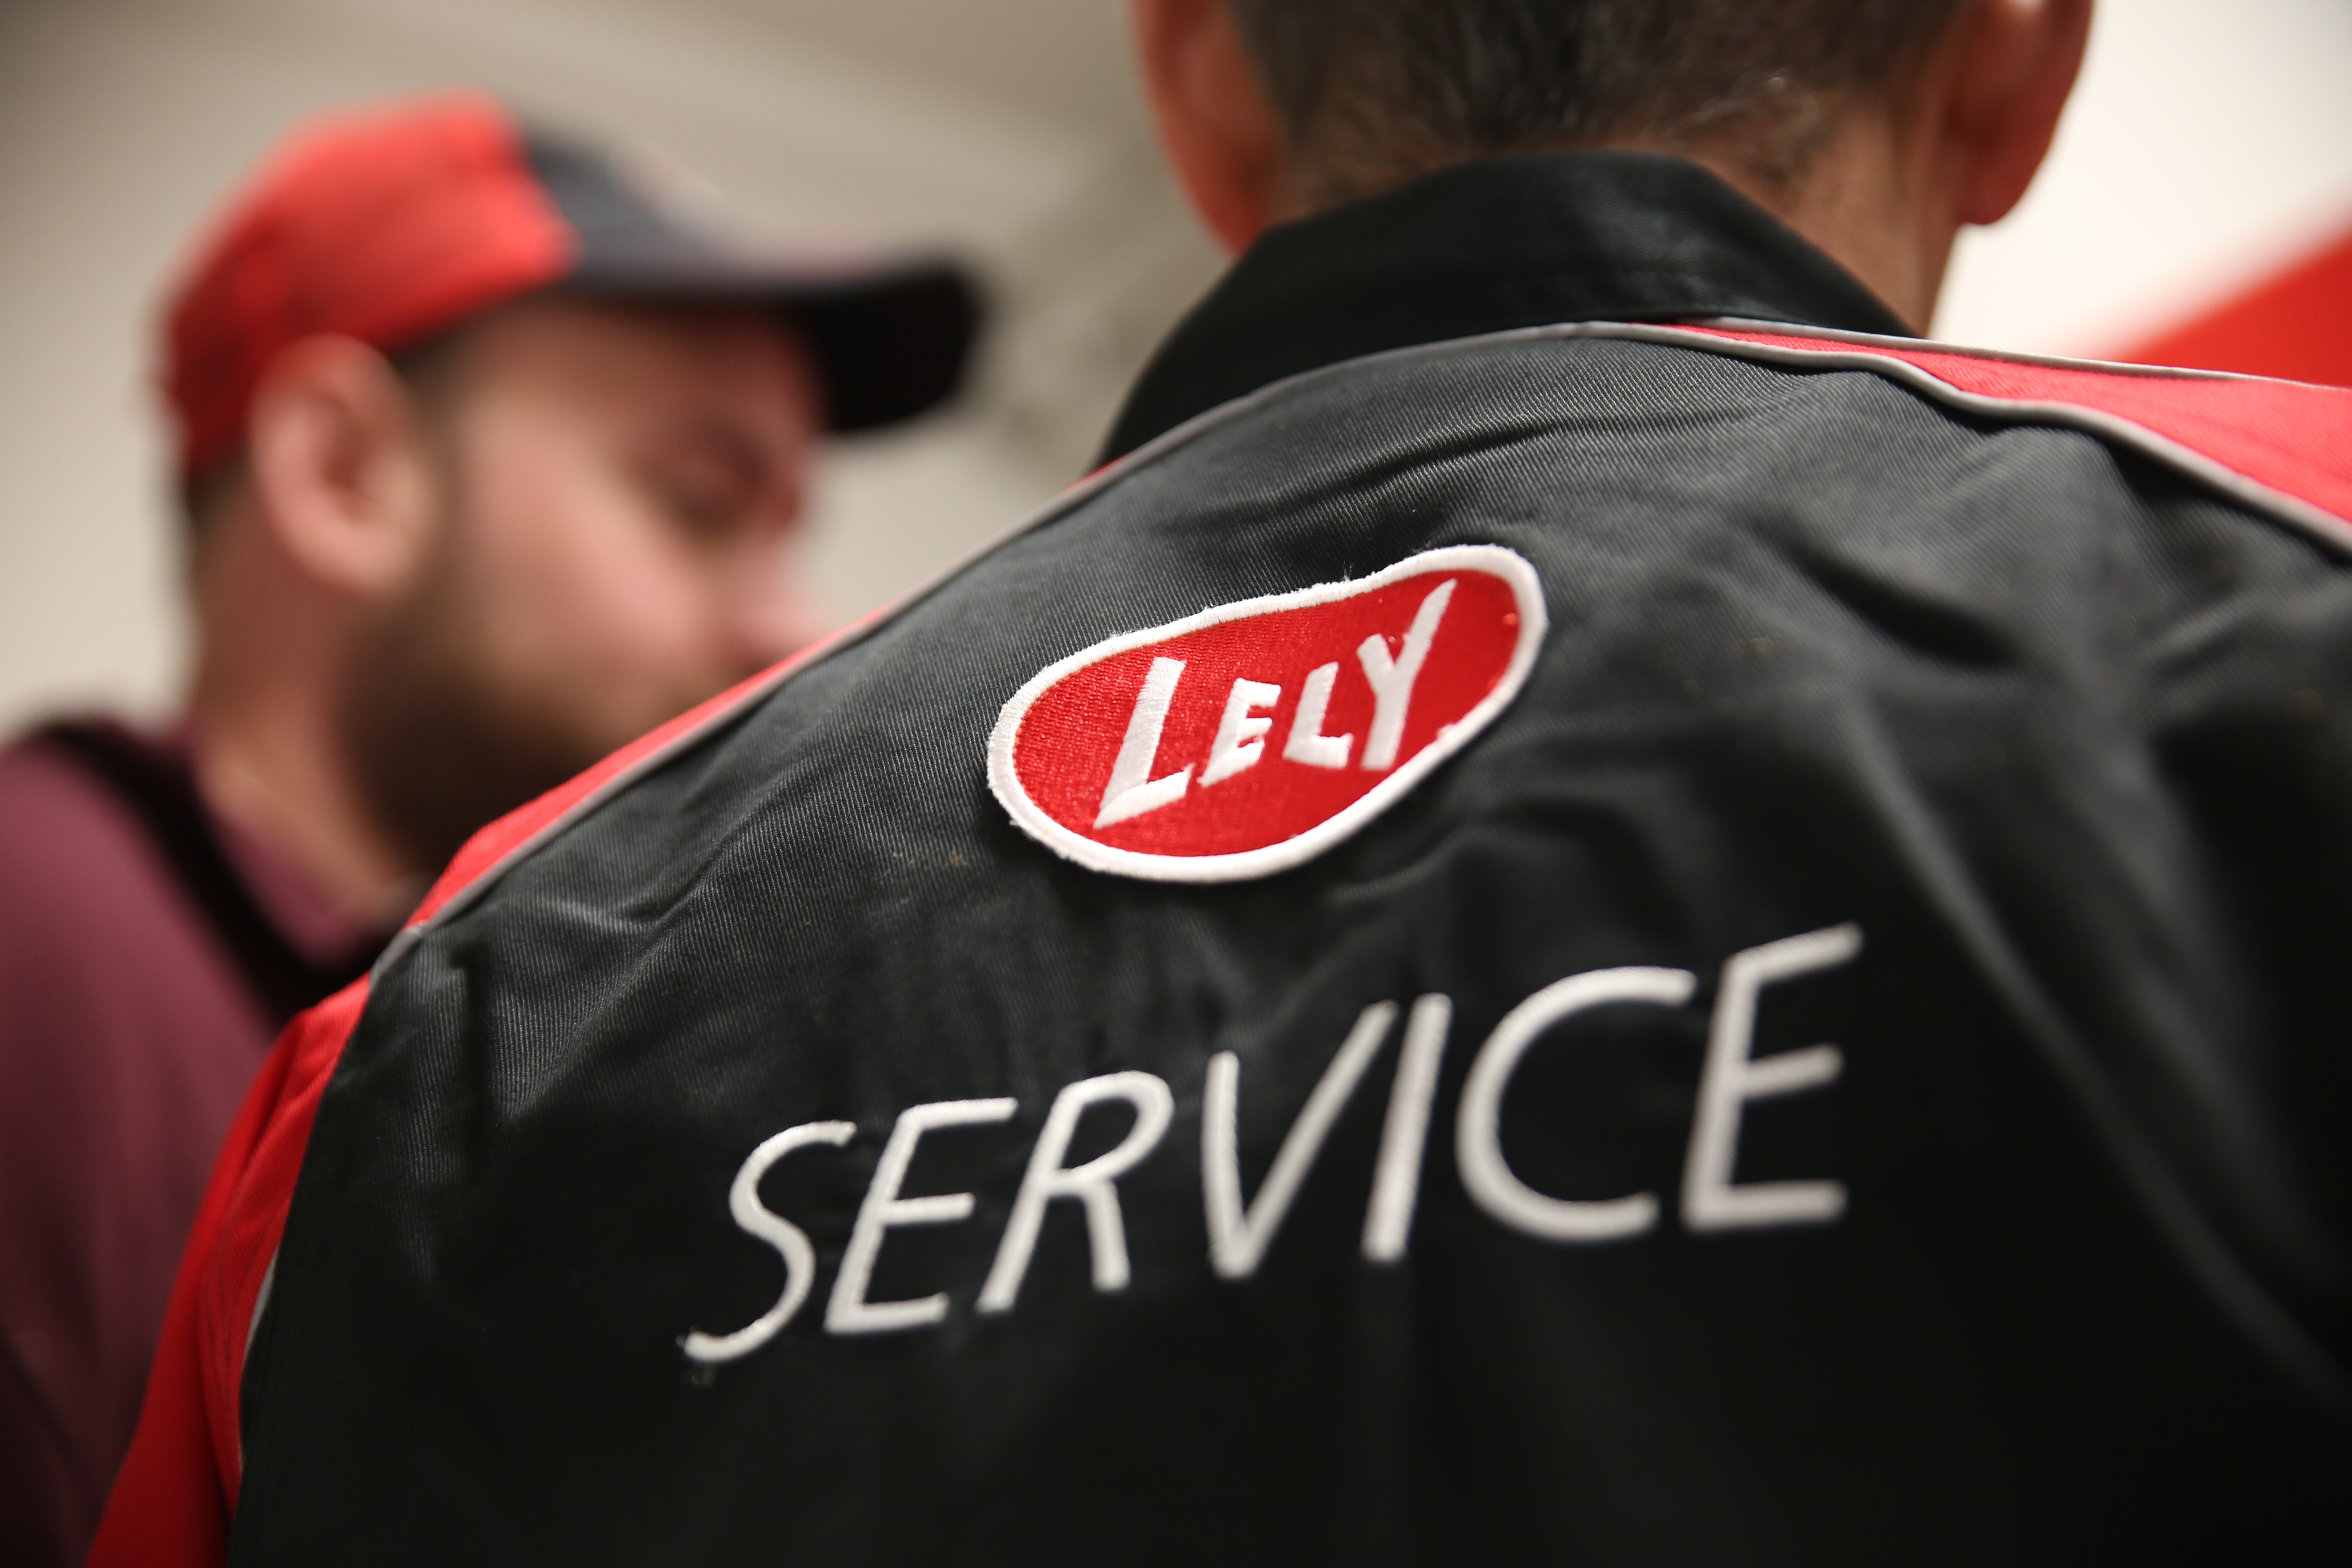 Lely North America has more than 260 certified technicians working at local Lely Centers, which is more than any other robotic milking and feeding brand in the industry